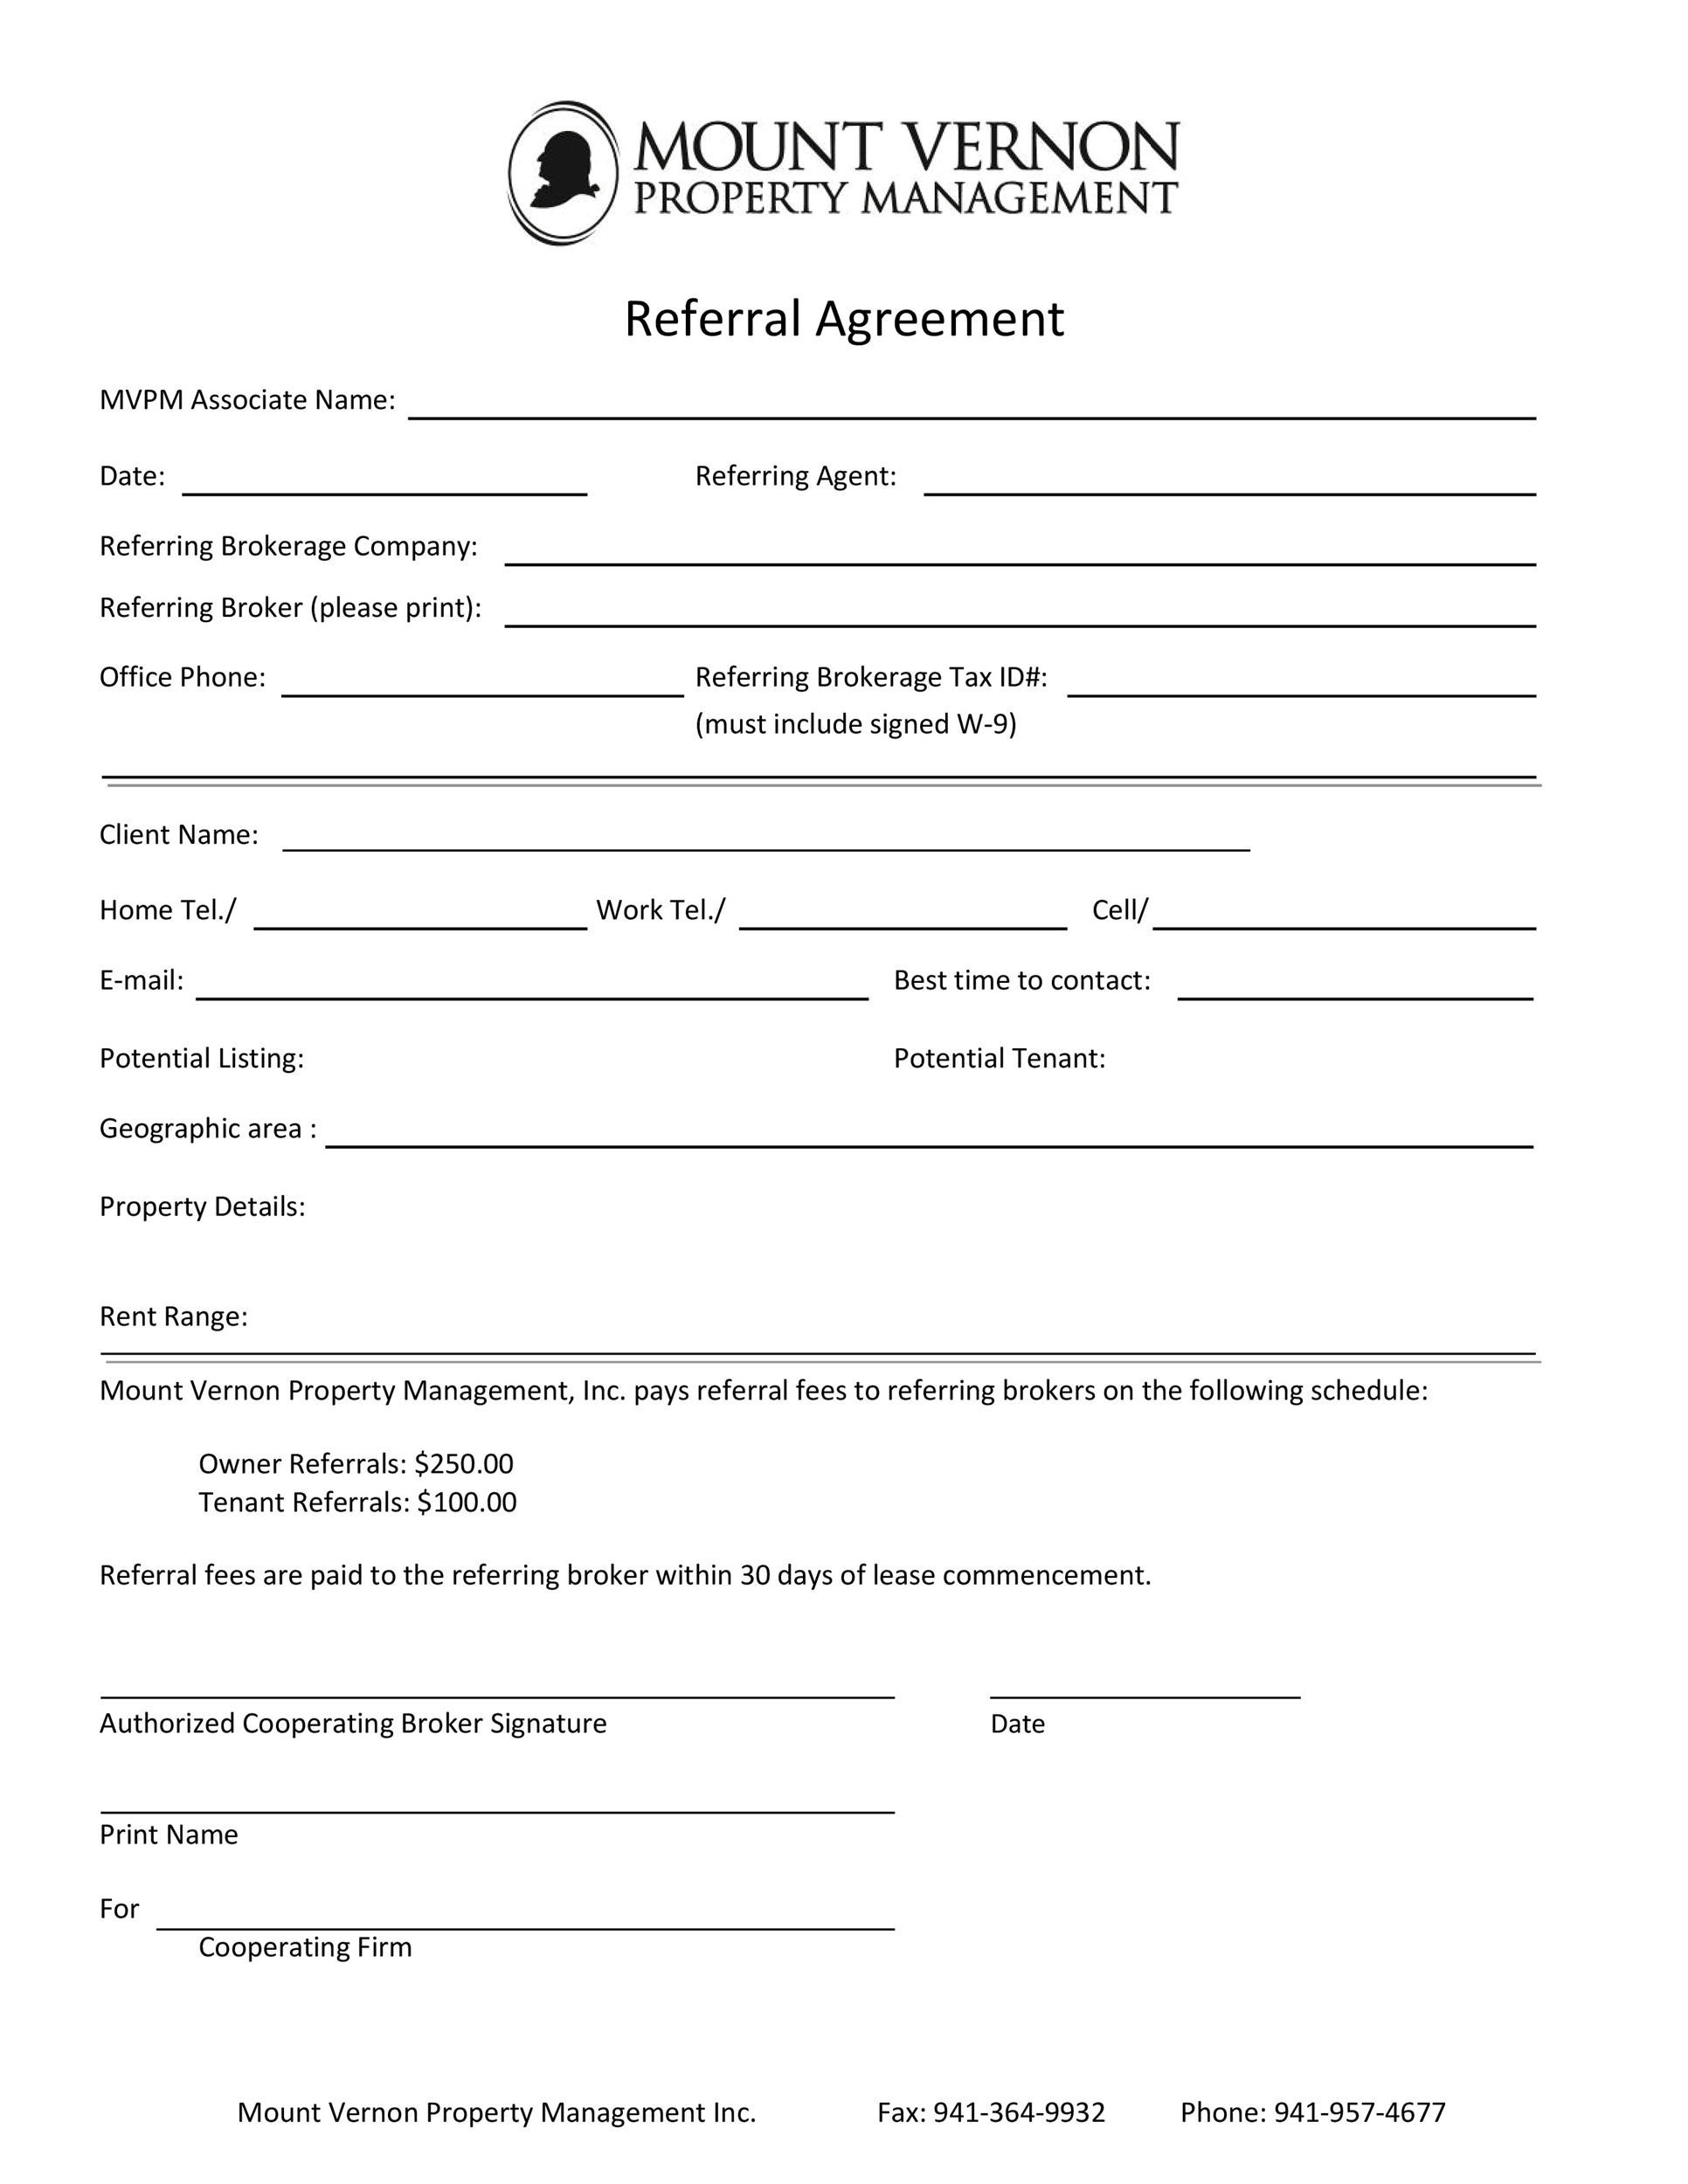 Free referral agreement template 33